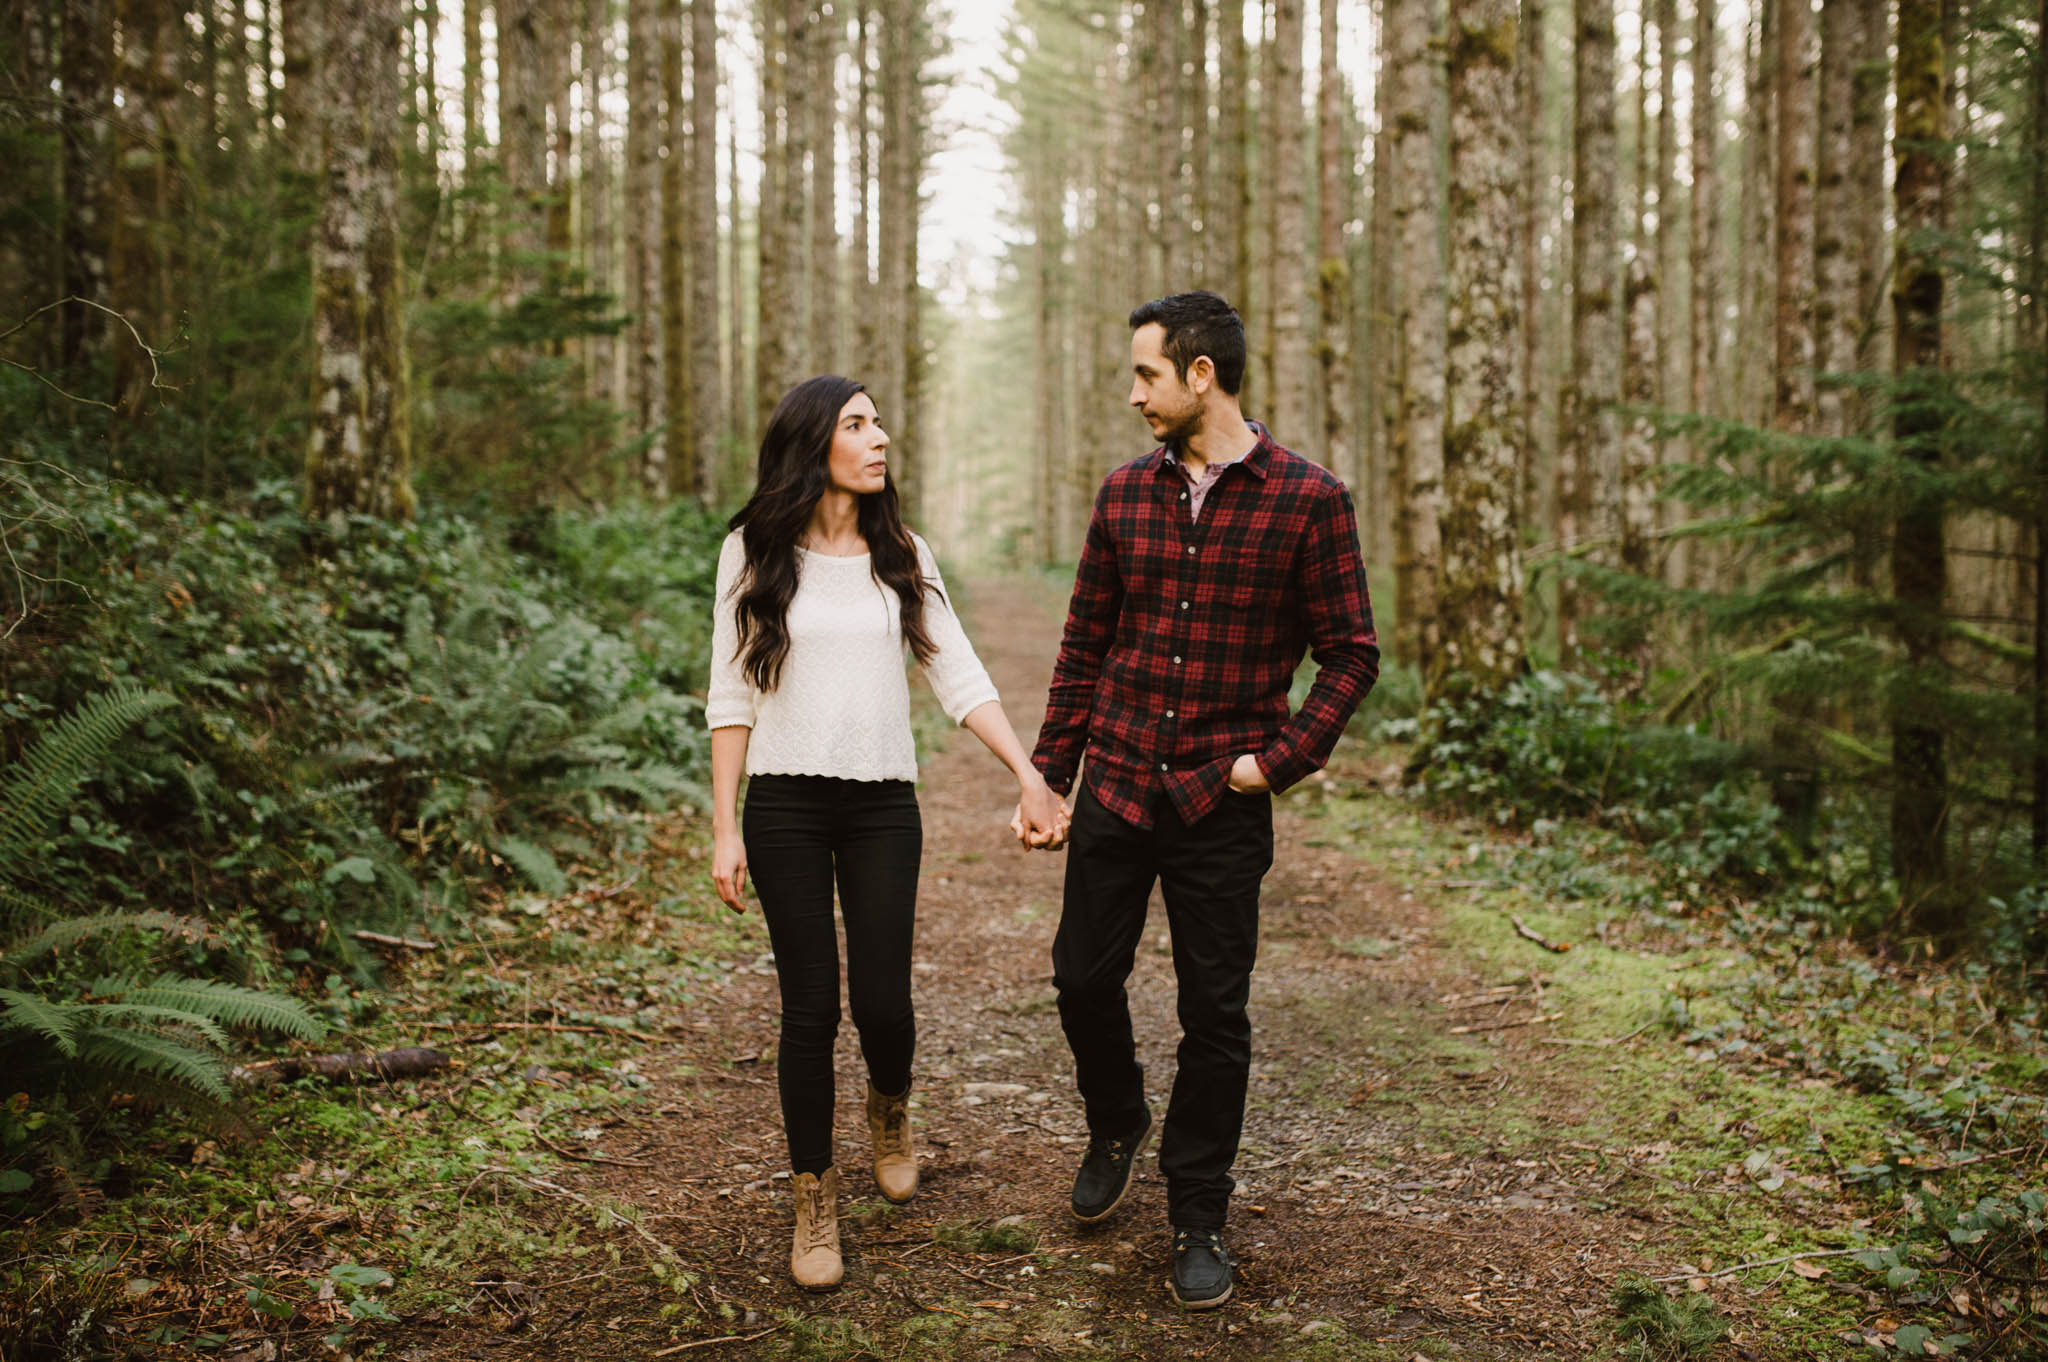 ©Isaiah-&-Taylor-Photography---Rattlesnake-Ledge-Trail-Engagement,-Seattle-Washington-021.jpg